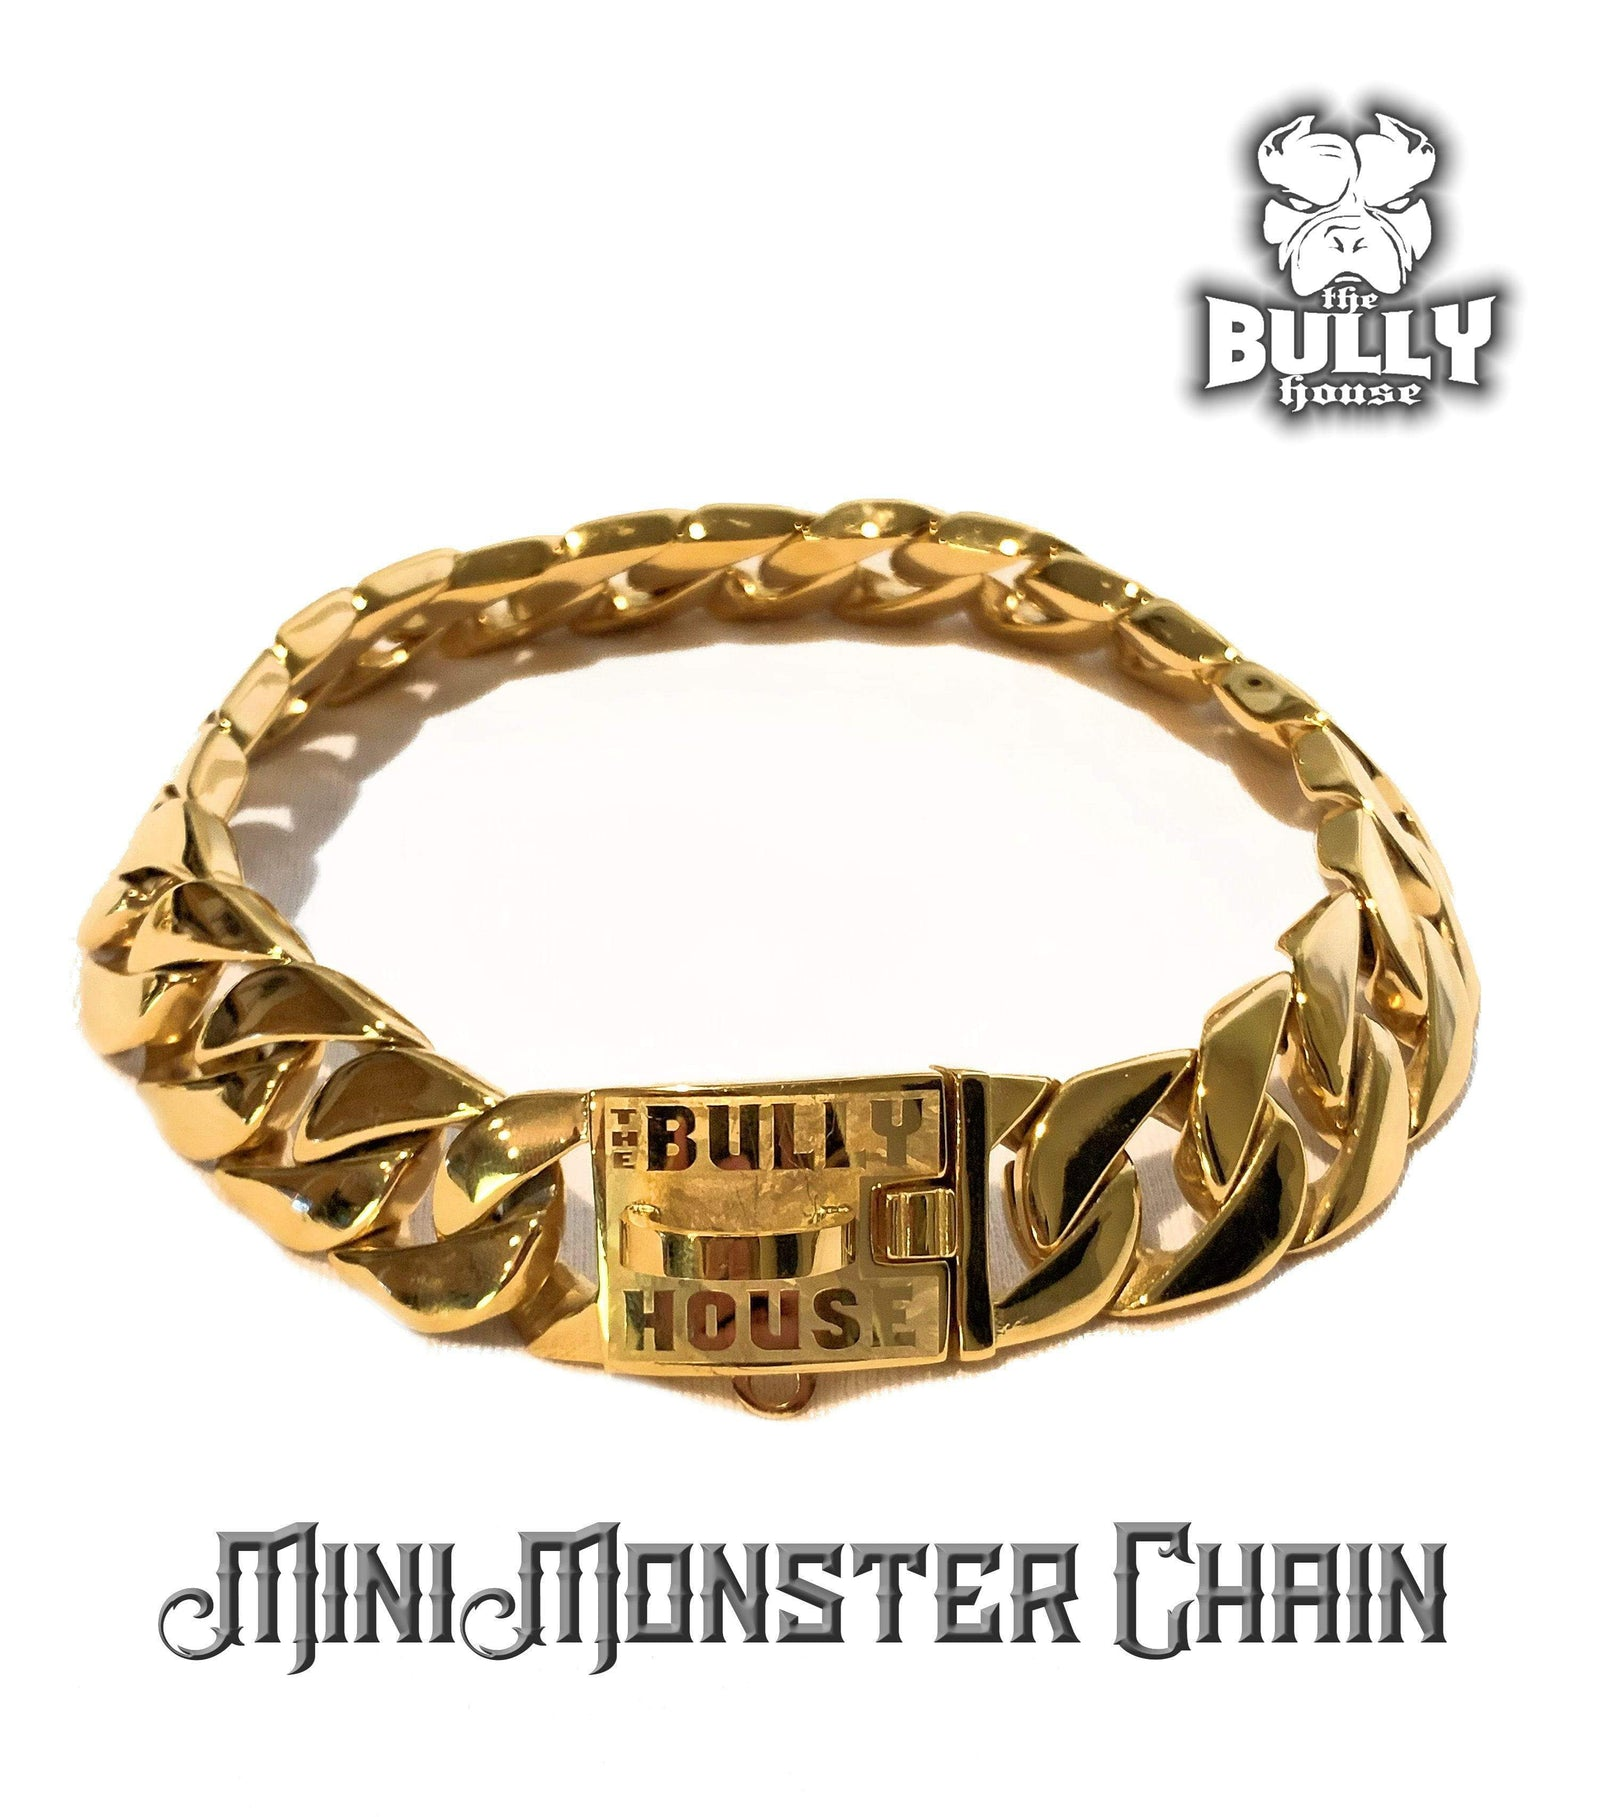 "The Bully House "" - MINI - MONSTER CHAIN Collection"" GOLD -- 25mm Wide"